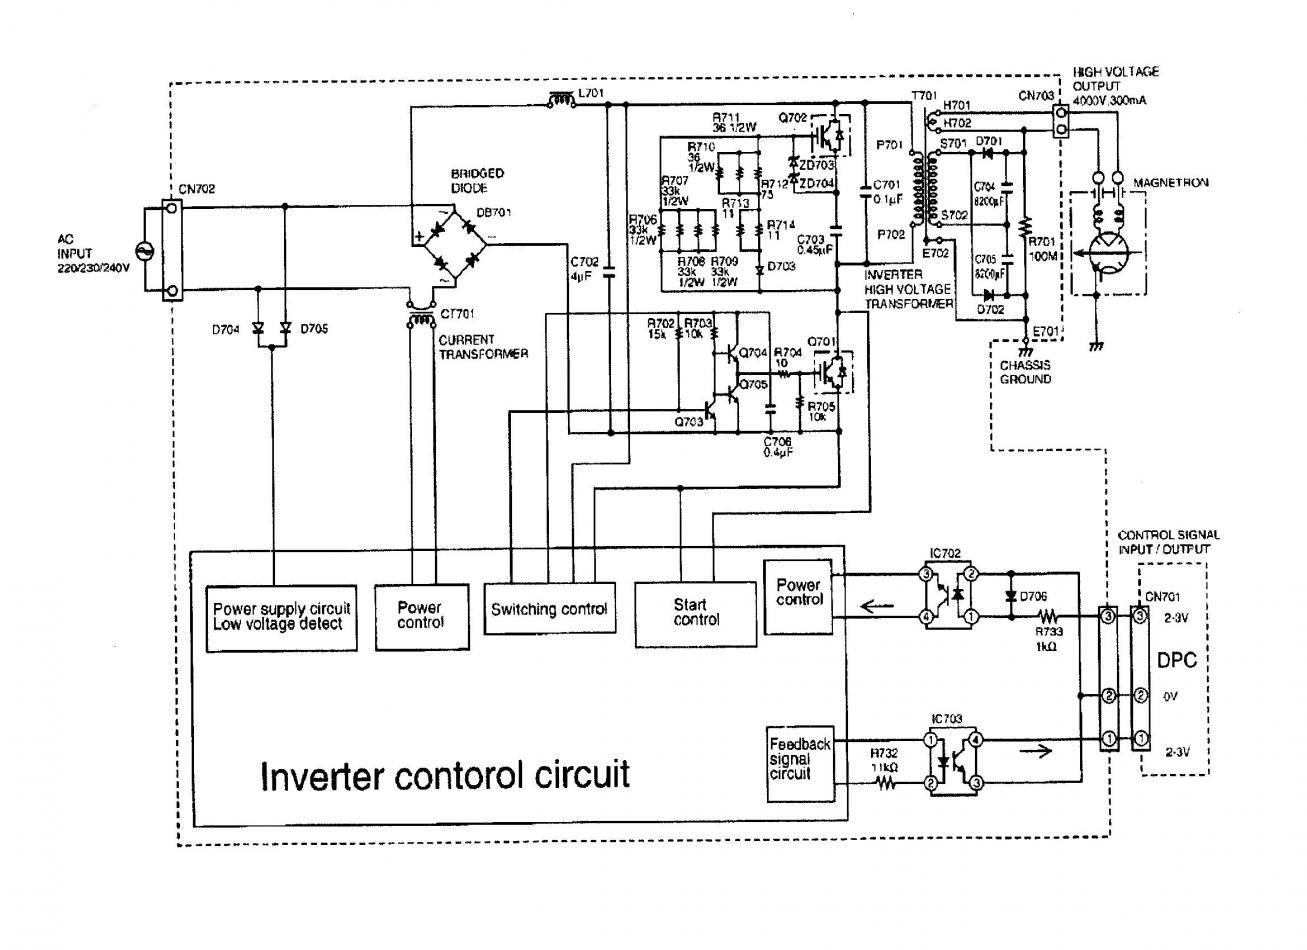 Microwave Oven Schematic Microwave Schematic Diagram?   j